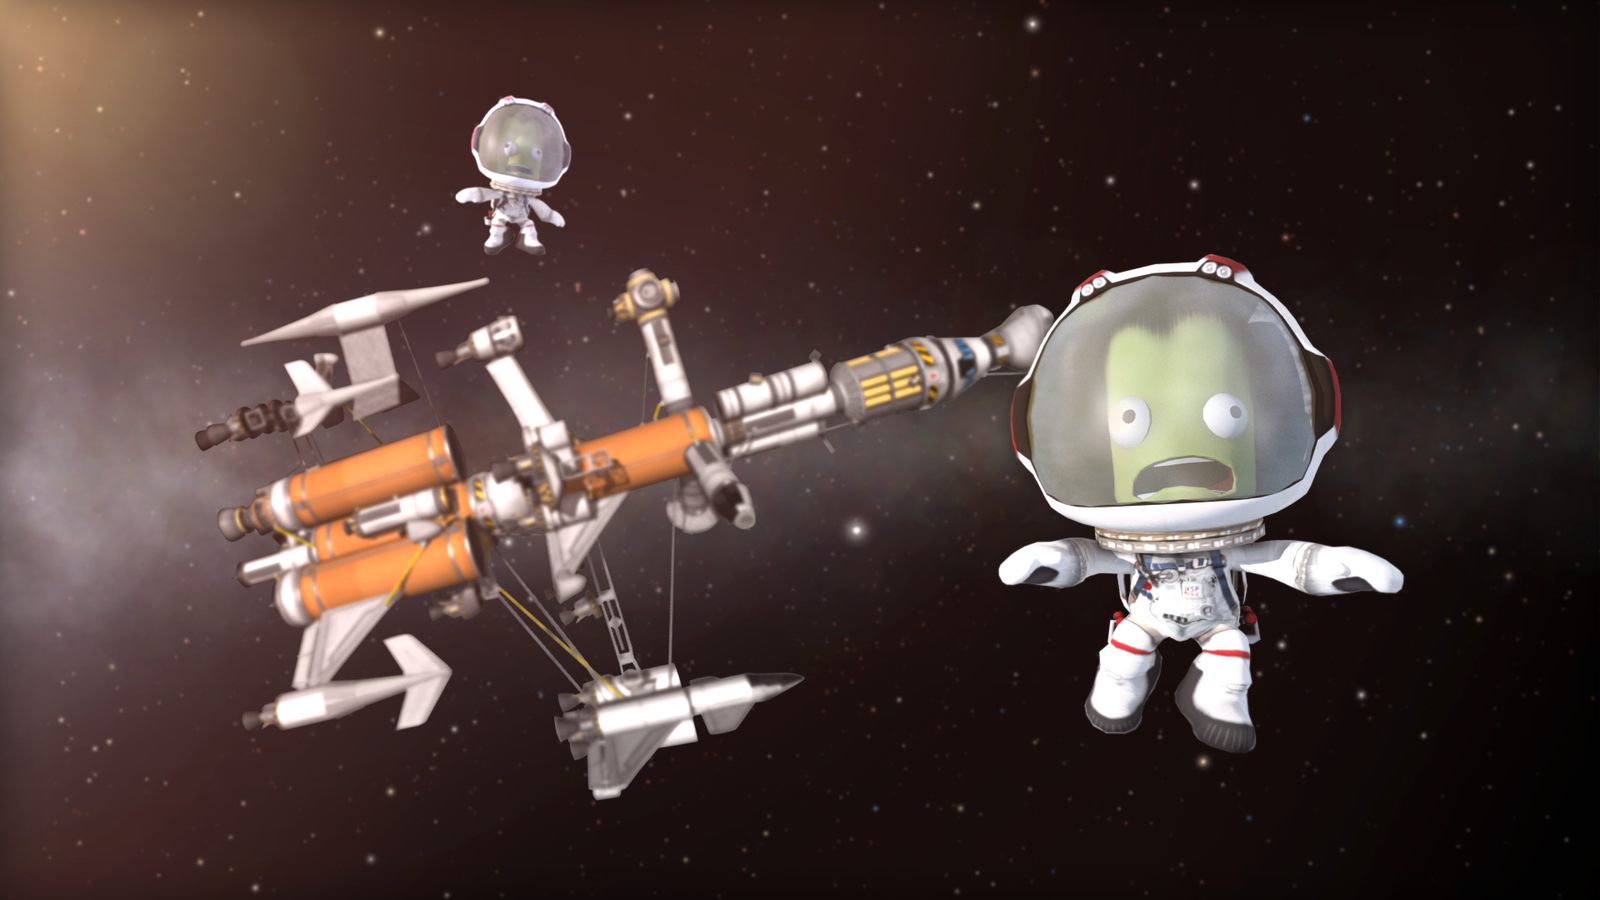 Kerbal Space Program Review Bombed Over Controversial ...